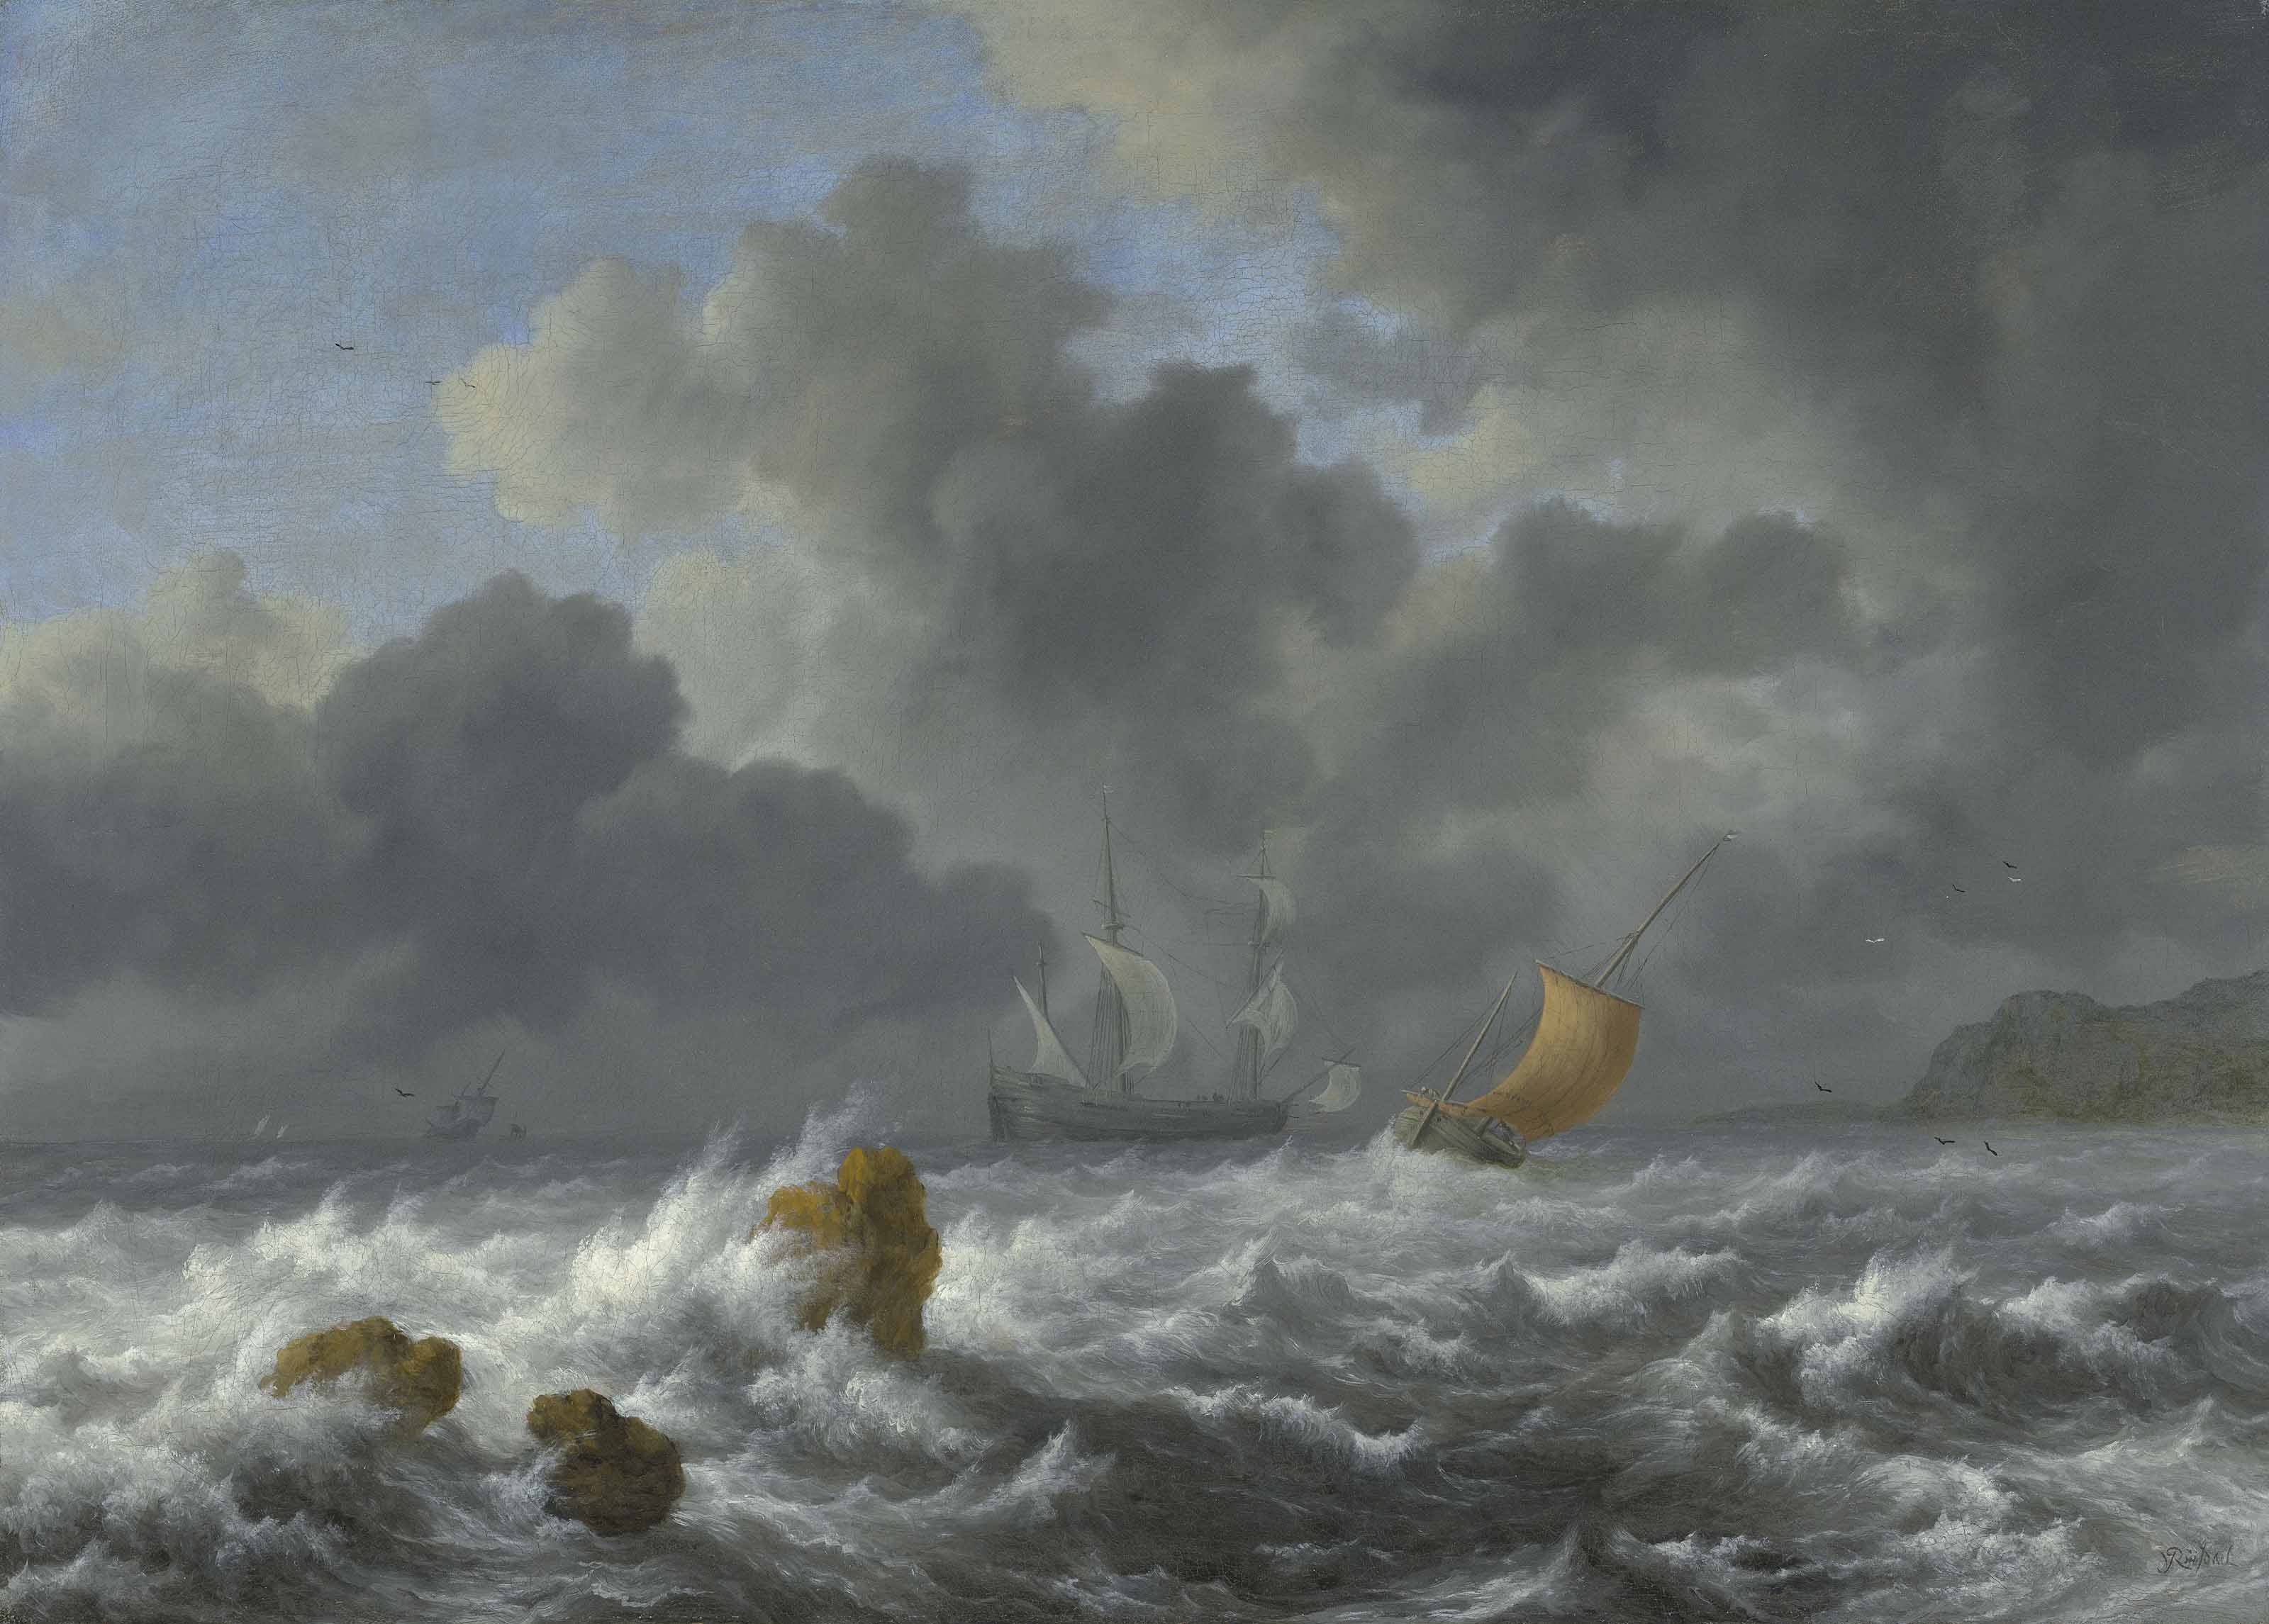 Sailing vessels in a stormy sea near a rocky coast